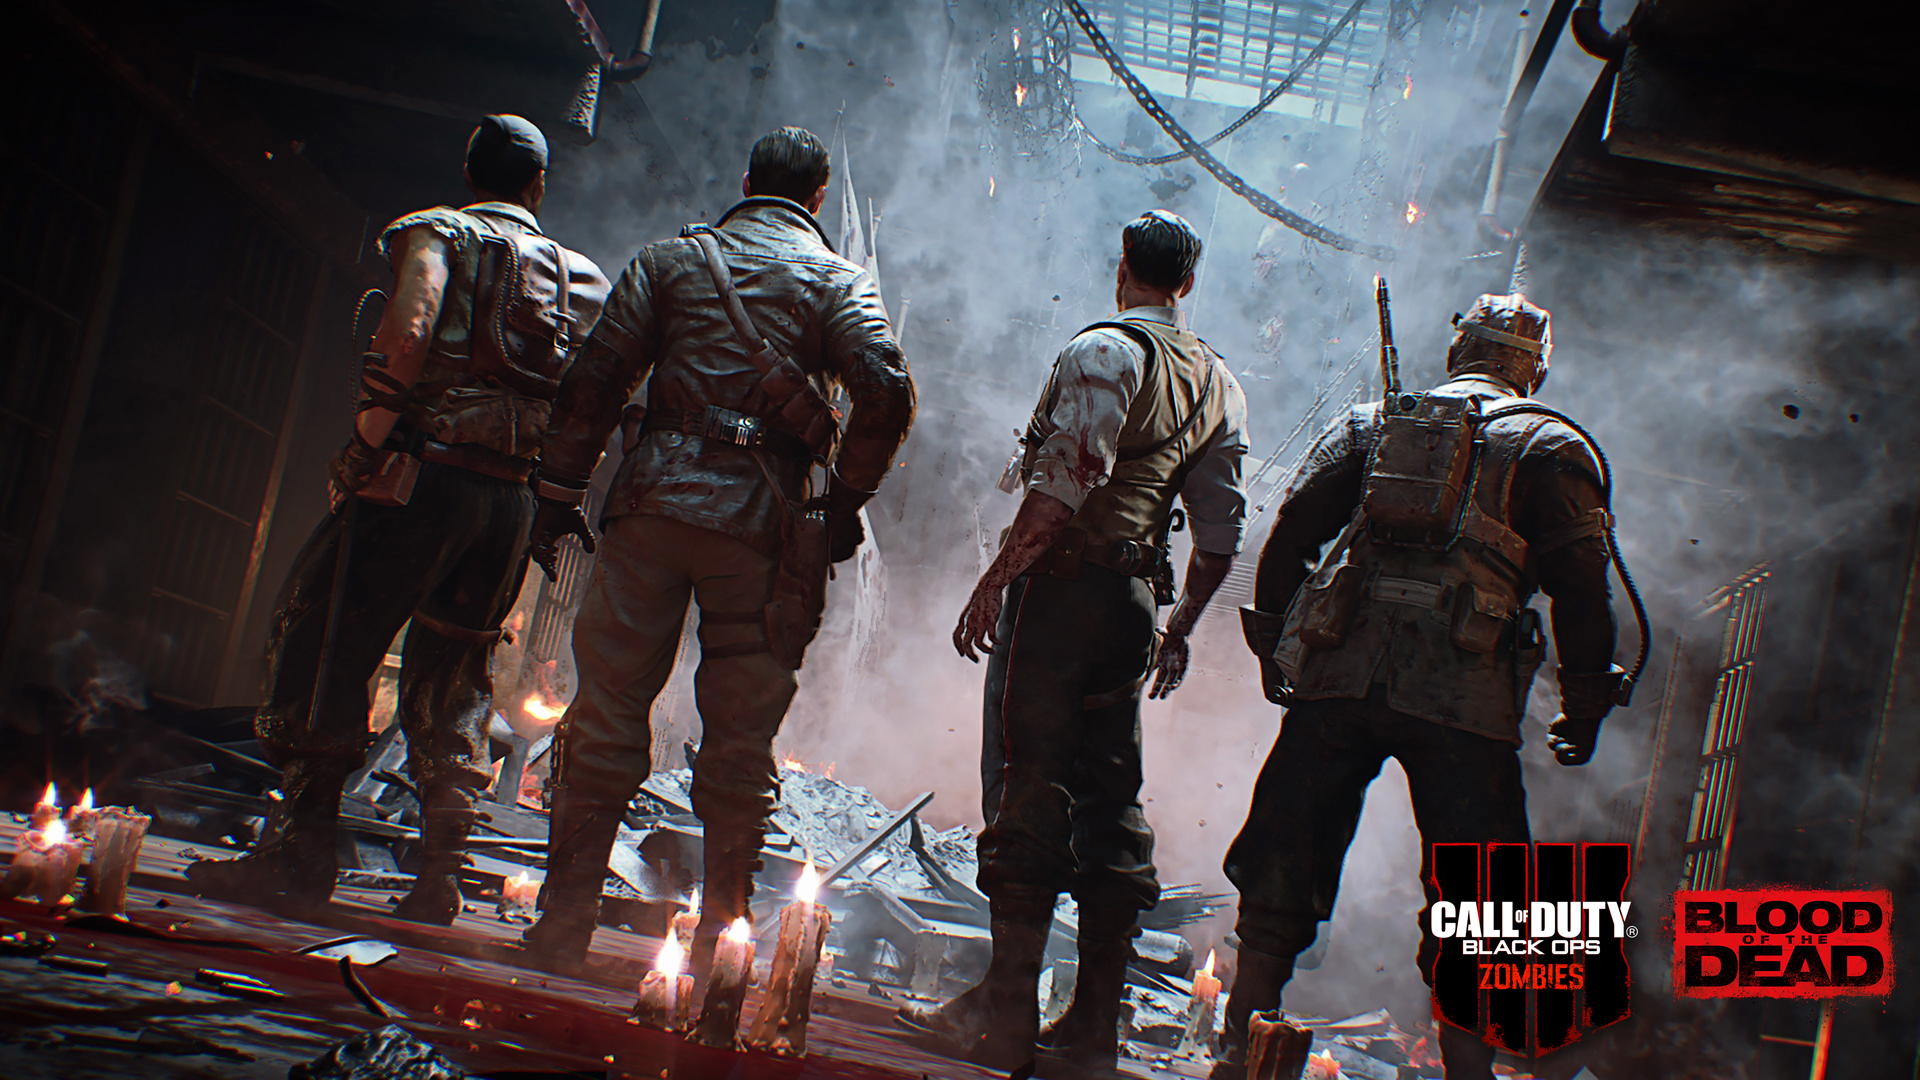 Call-of-Duty-Black-Ops-4_zombies_botd_01